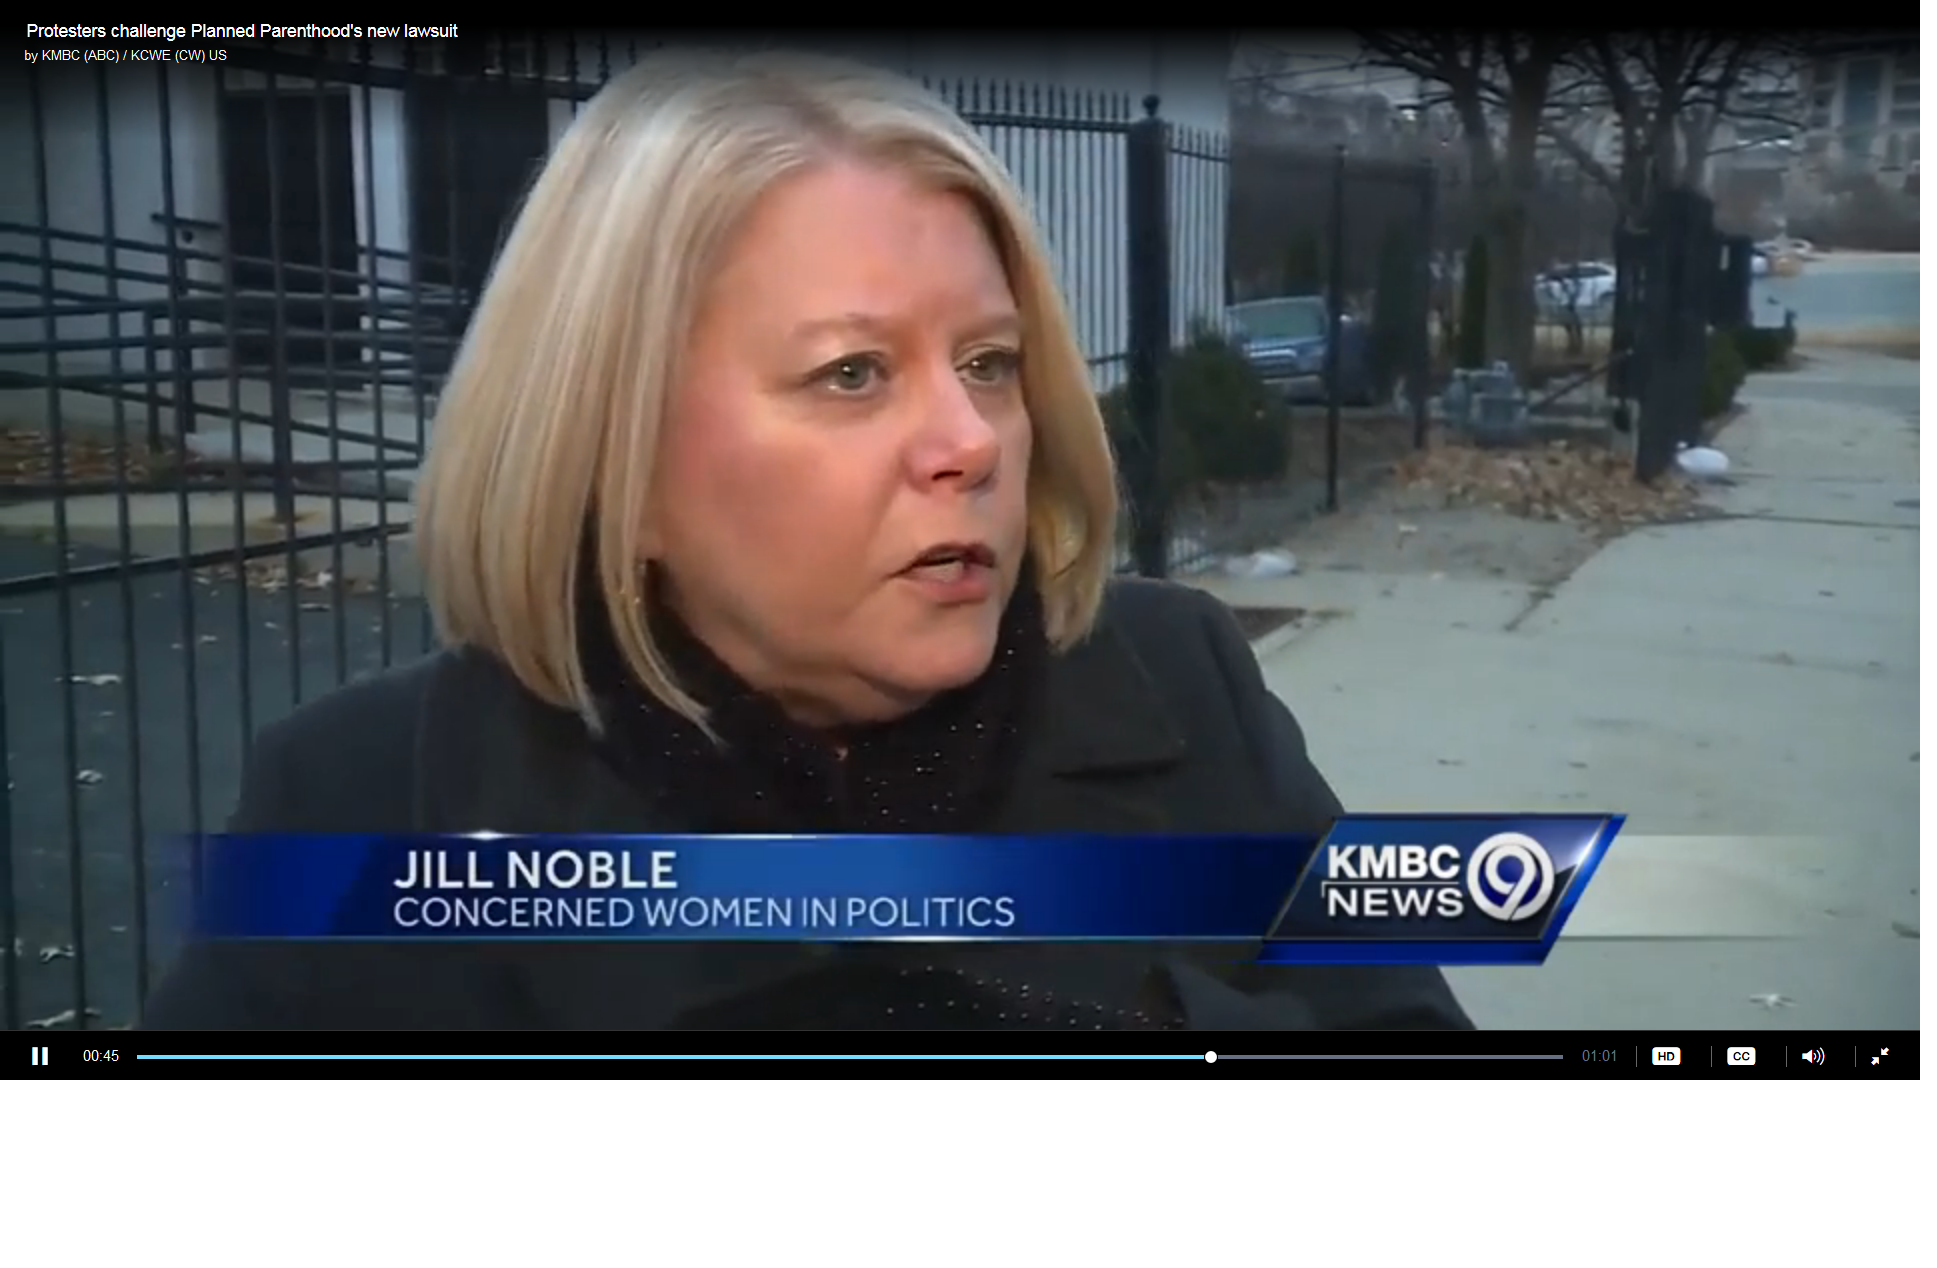 kmbc-9-planned-parenthood